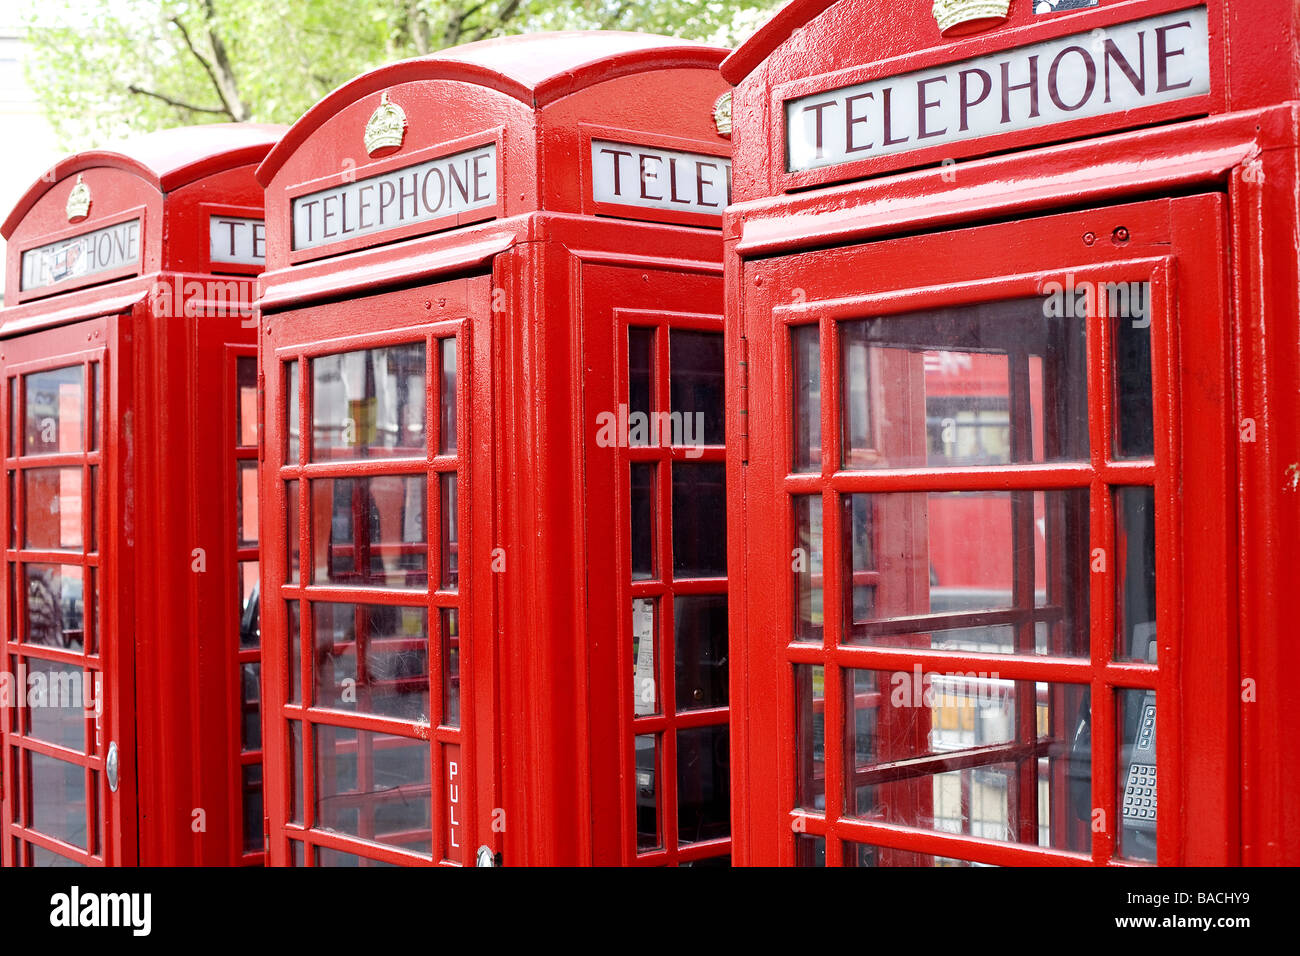 United Kingdom, London, the red telephone box designed by the architect Sir Giles Gilbert Scott in the twenties - Stock Image